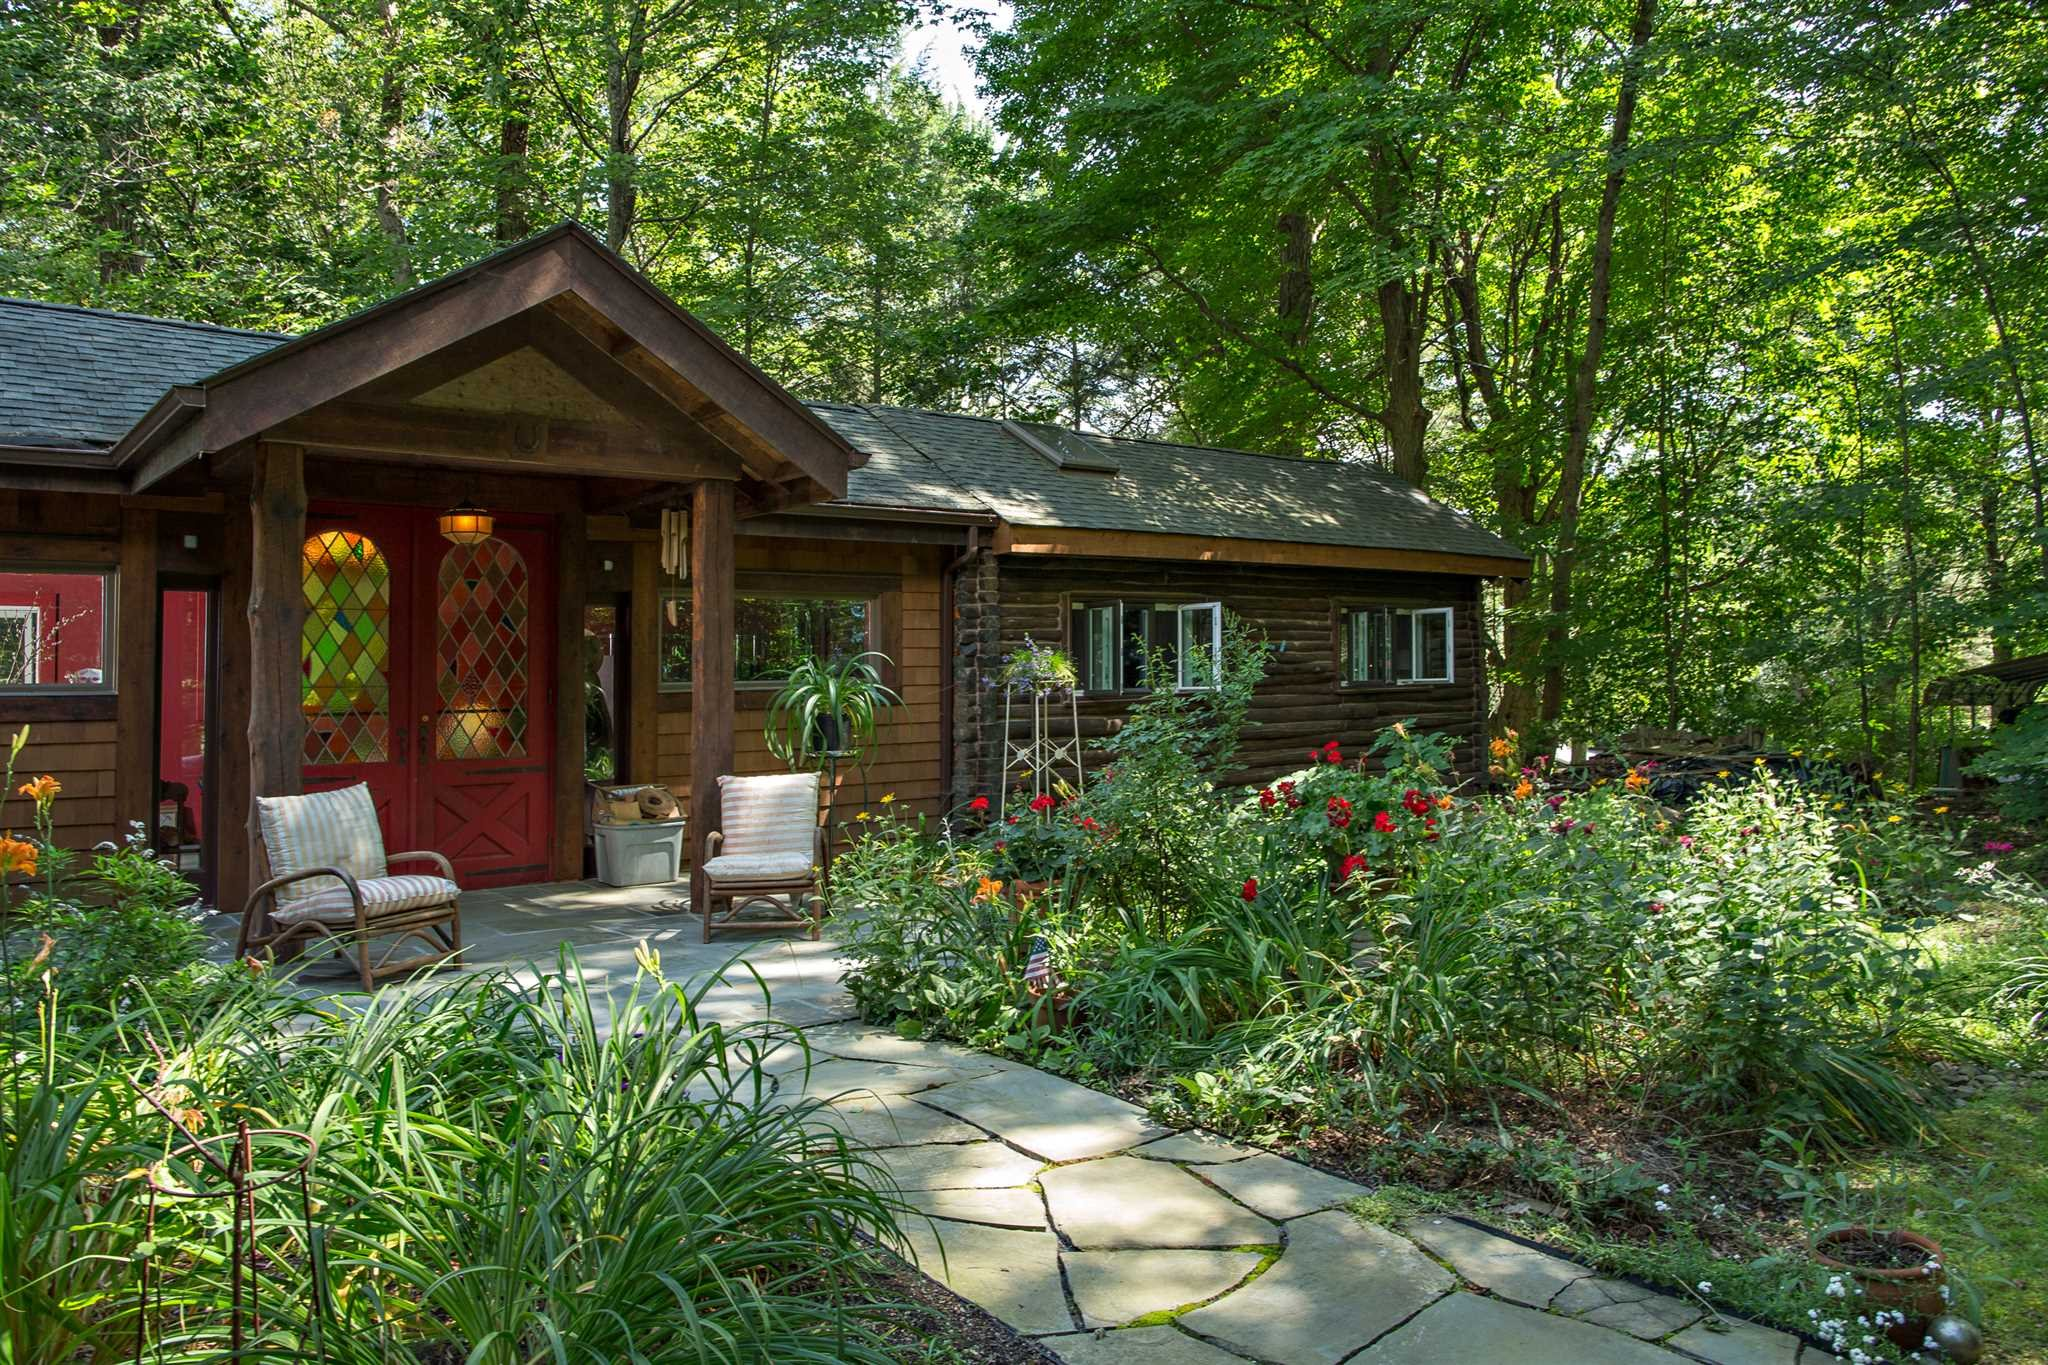 Additional photo for property listing at 26 VICTORIA WAY 26 VICTORIA WAY Pawling, New York 12531 United States